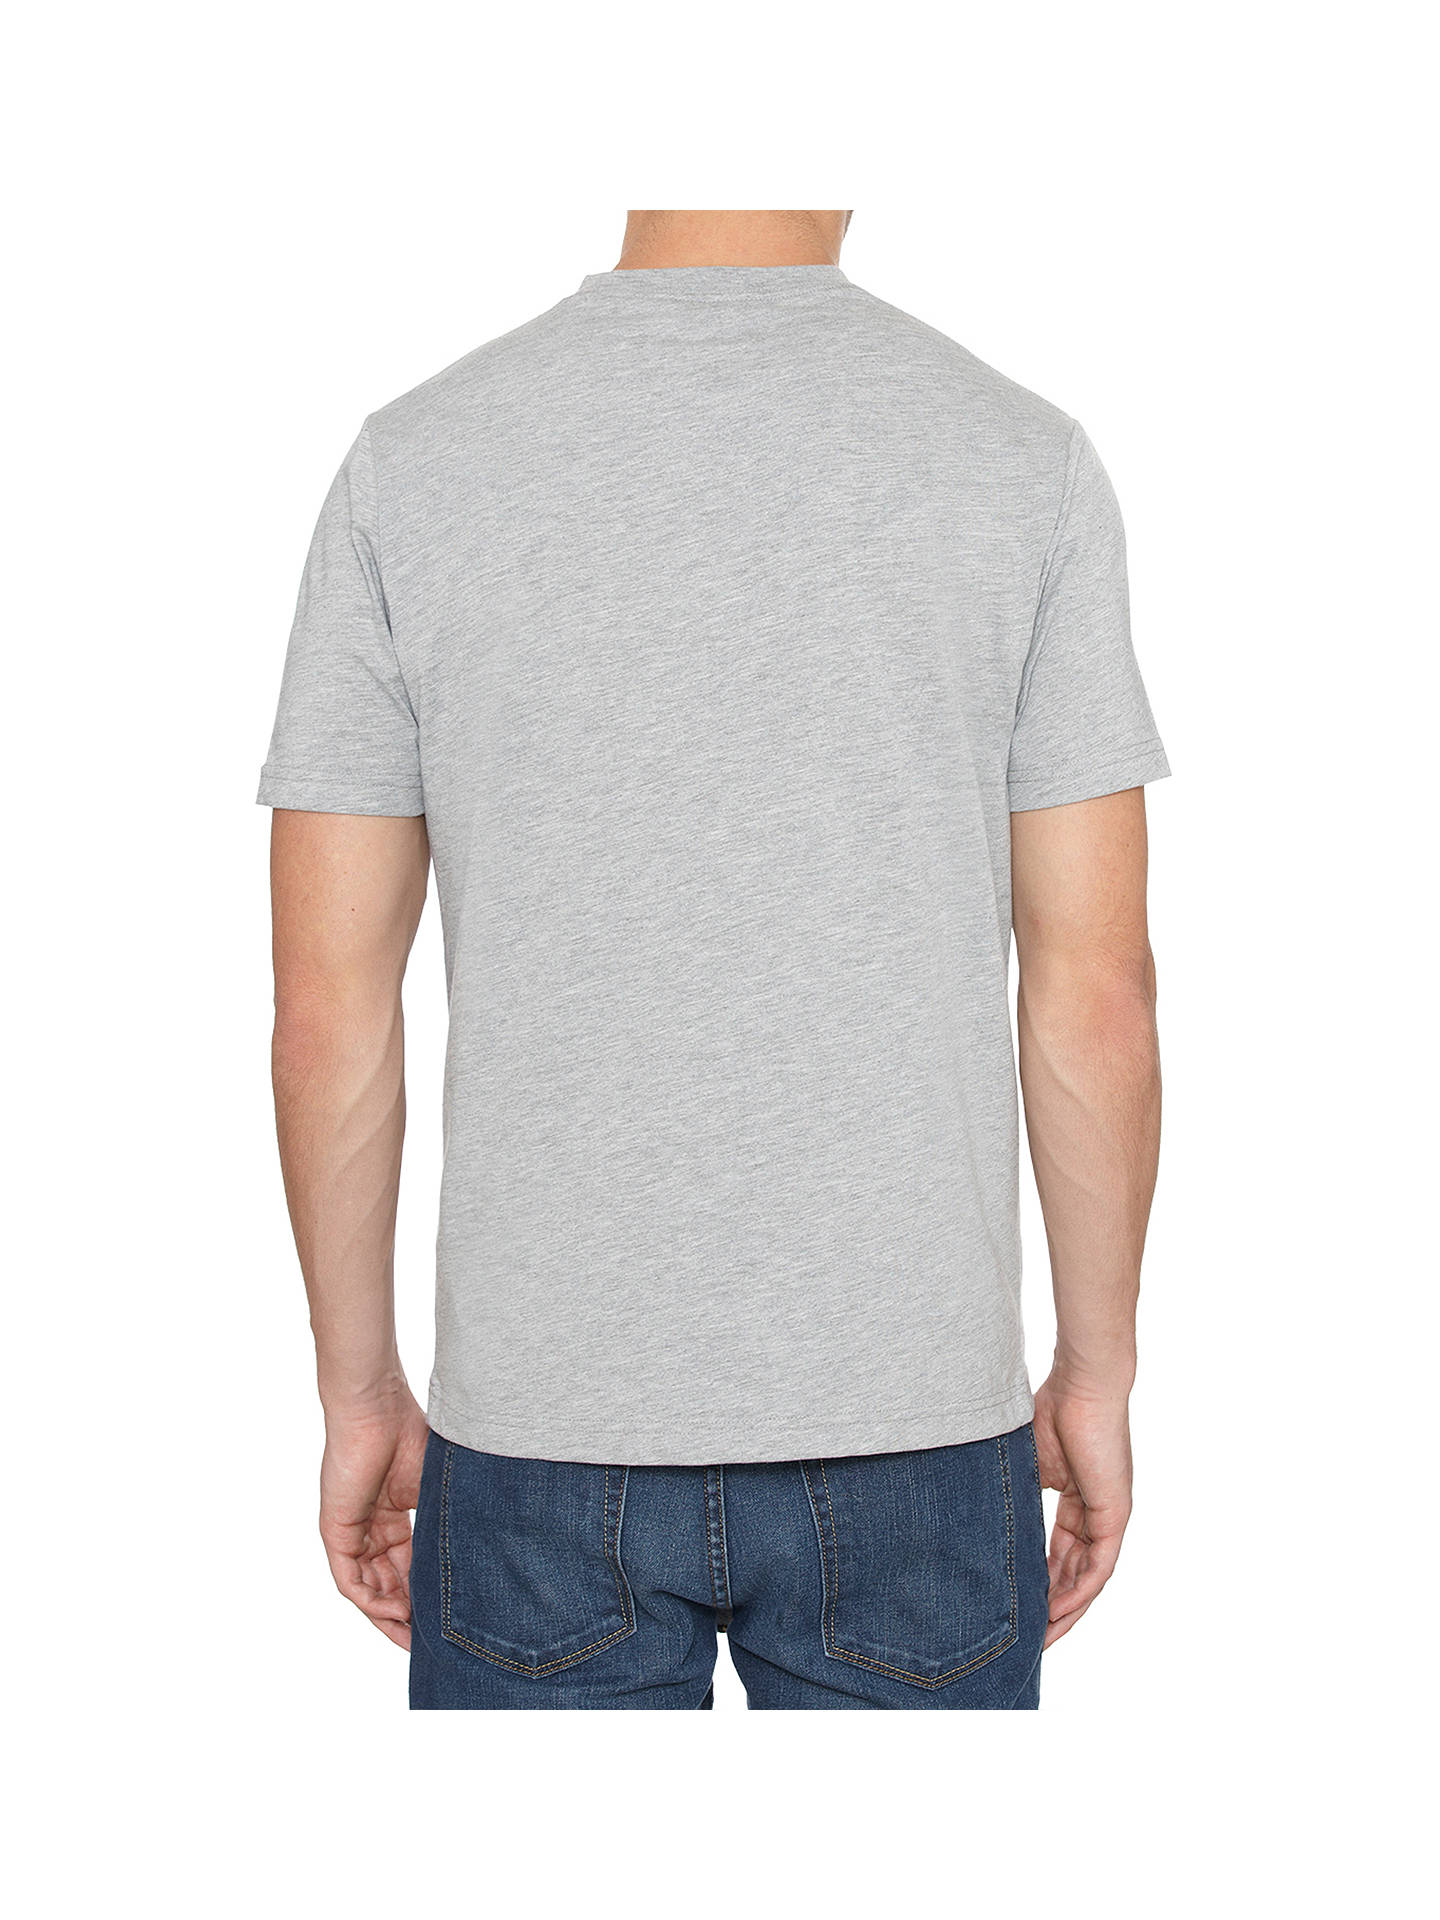 BuyOriginal Penguin Pin Point T-Shirt, Rain Heather, S Online at johnlewis.com